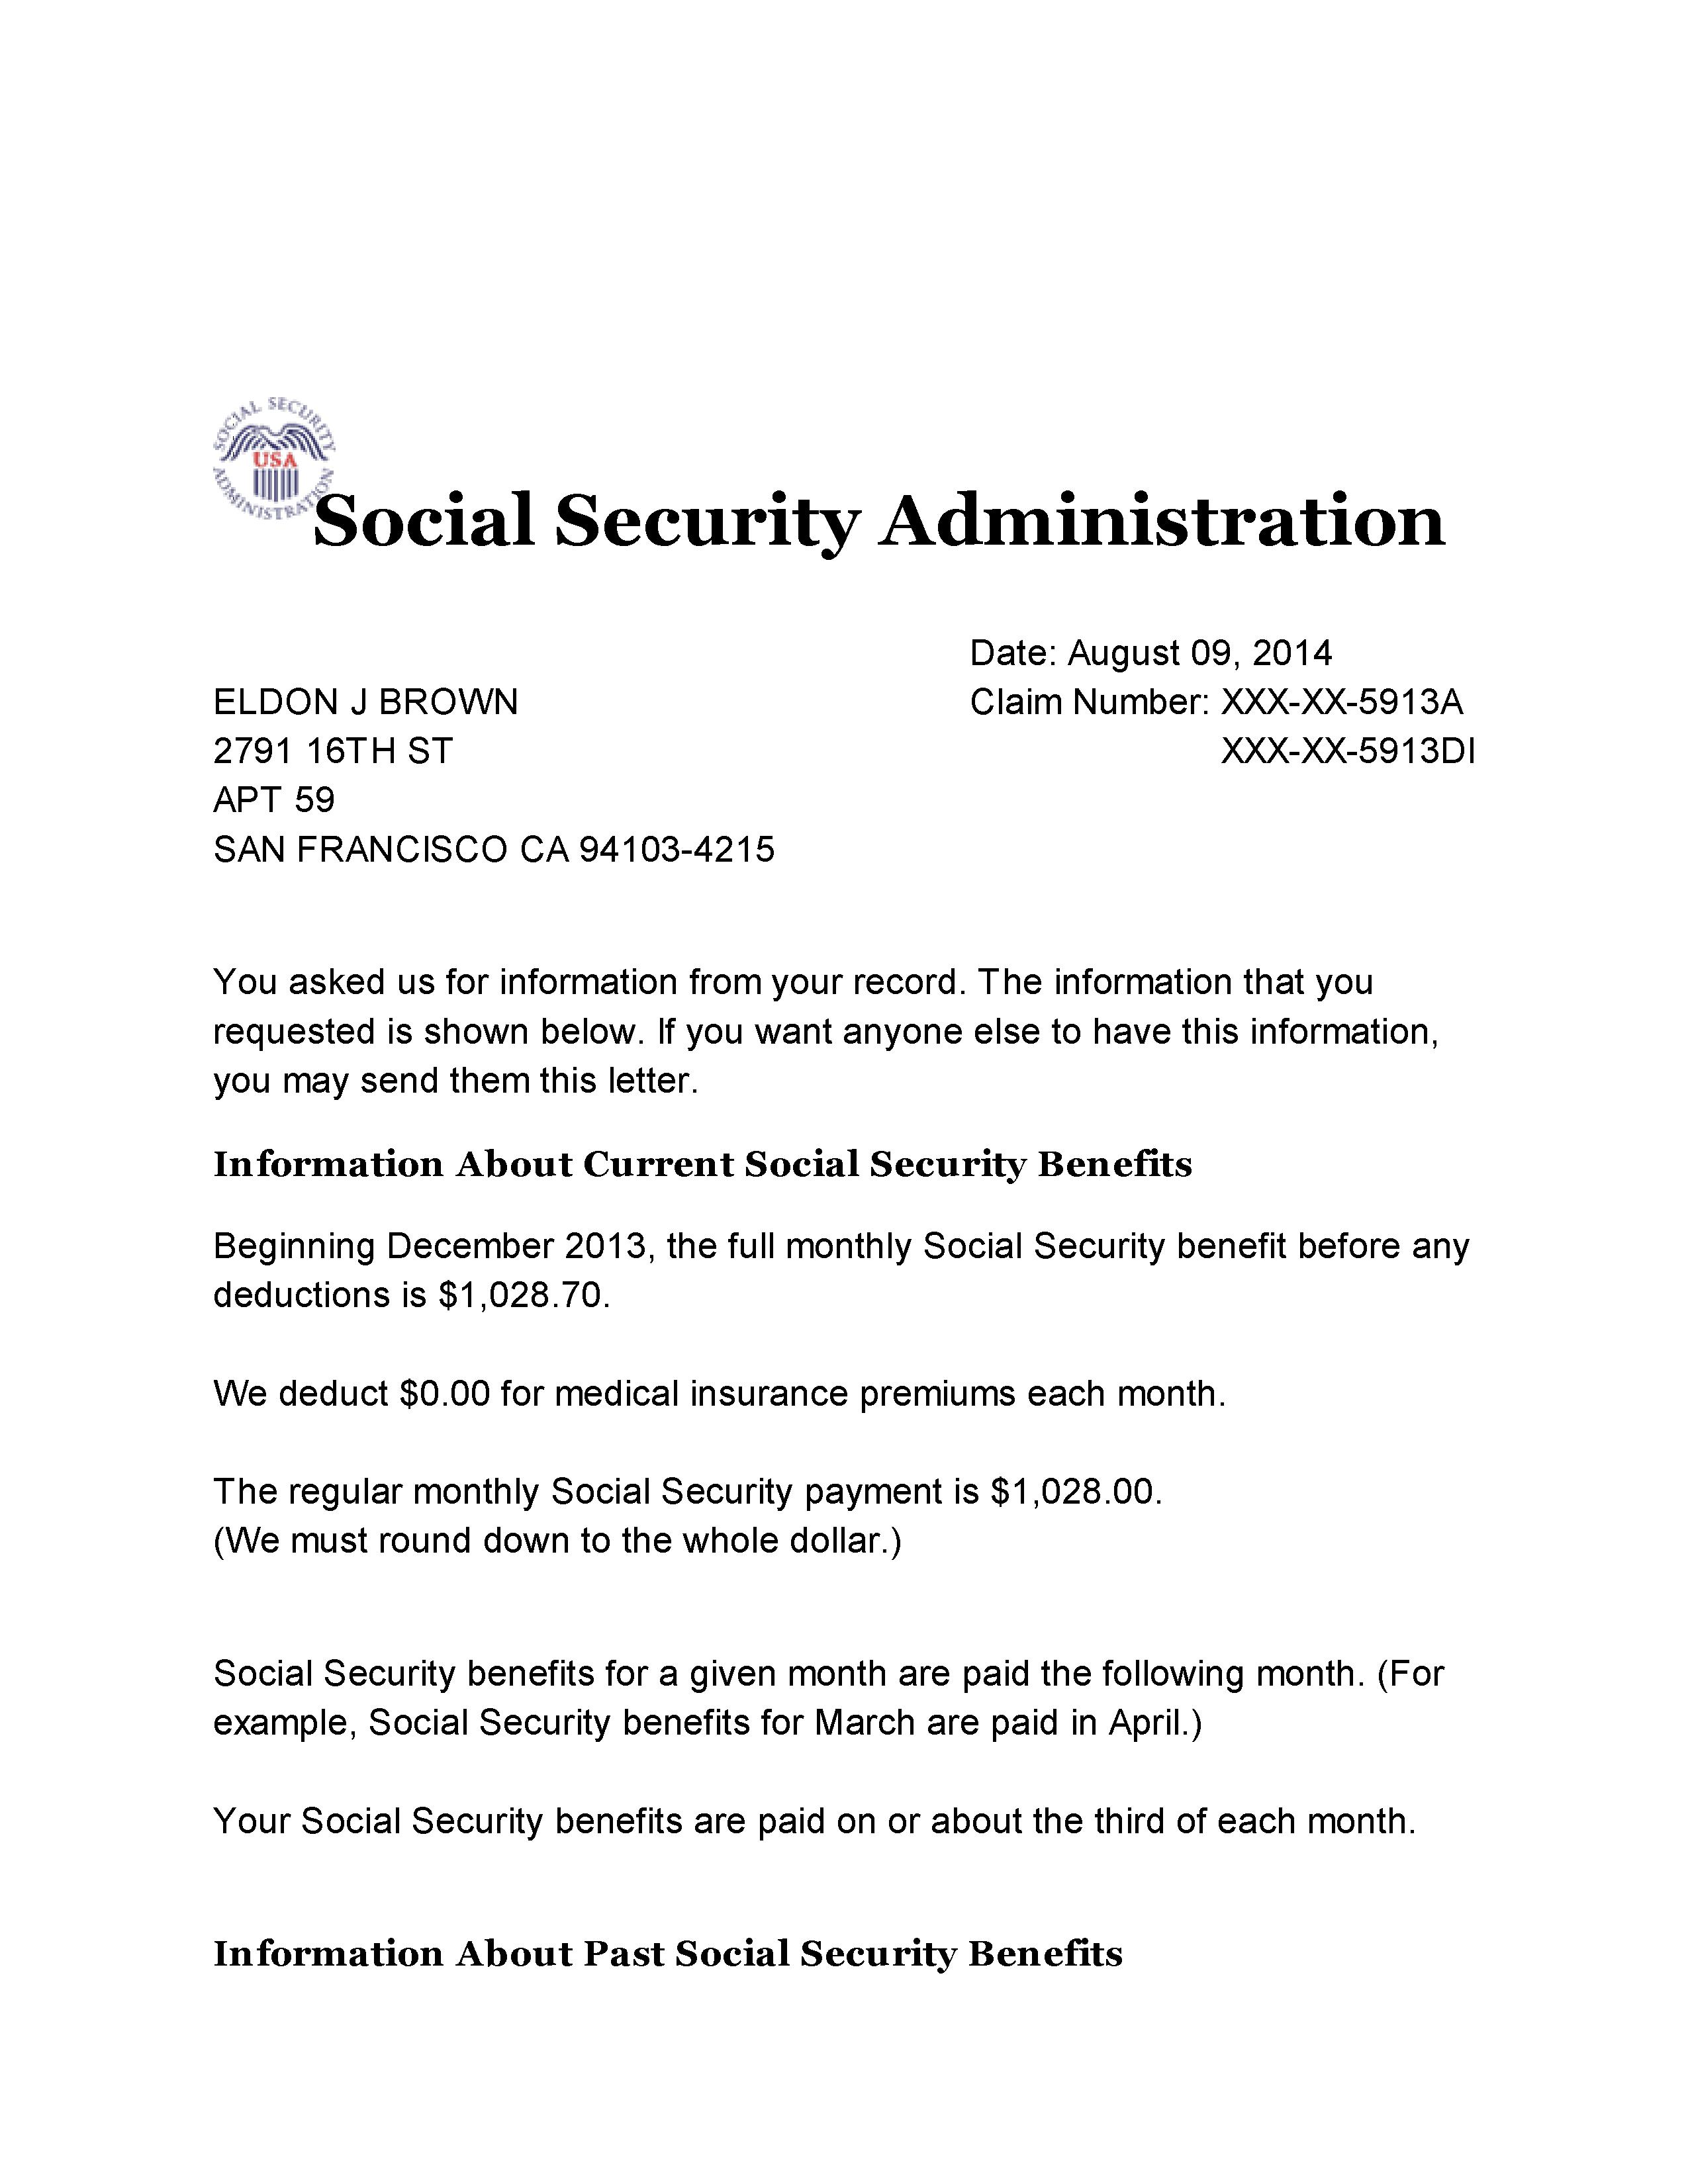 How to Get Proof of Social Security Number pictures